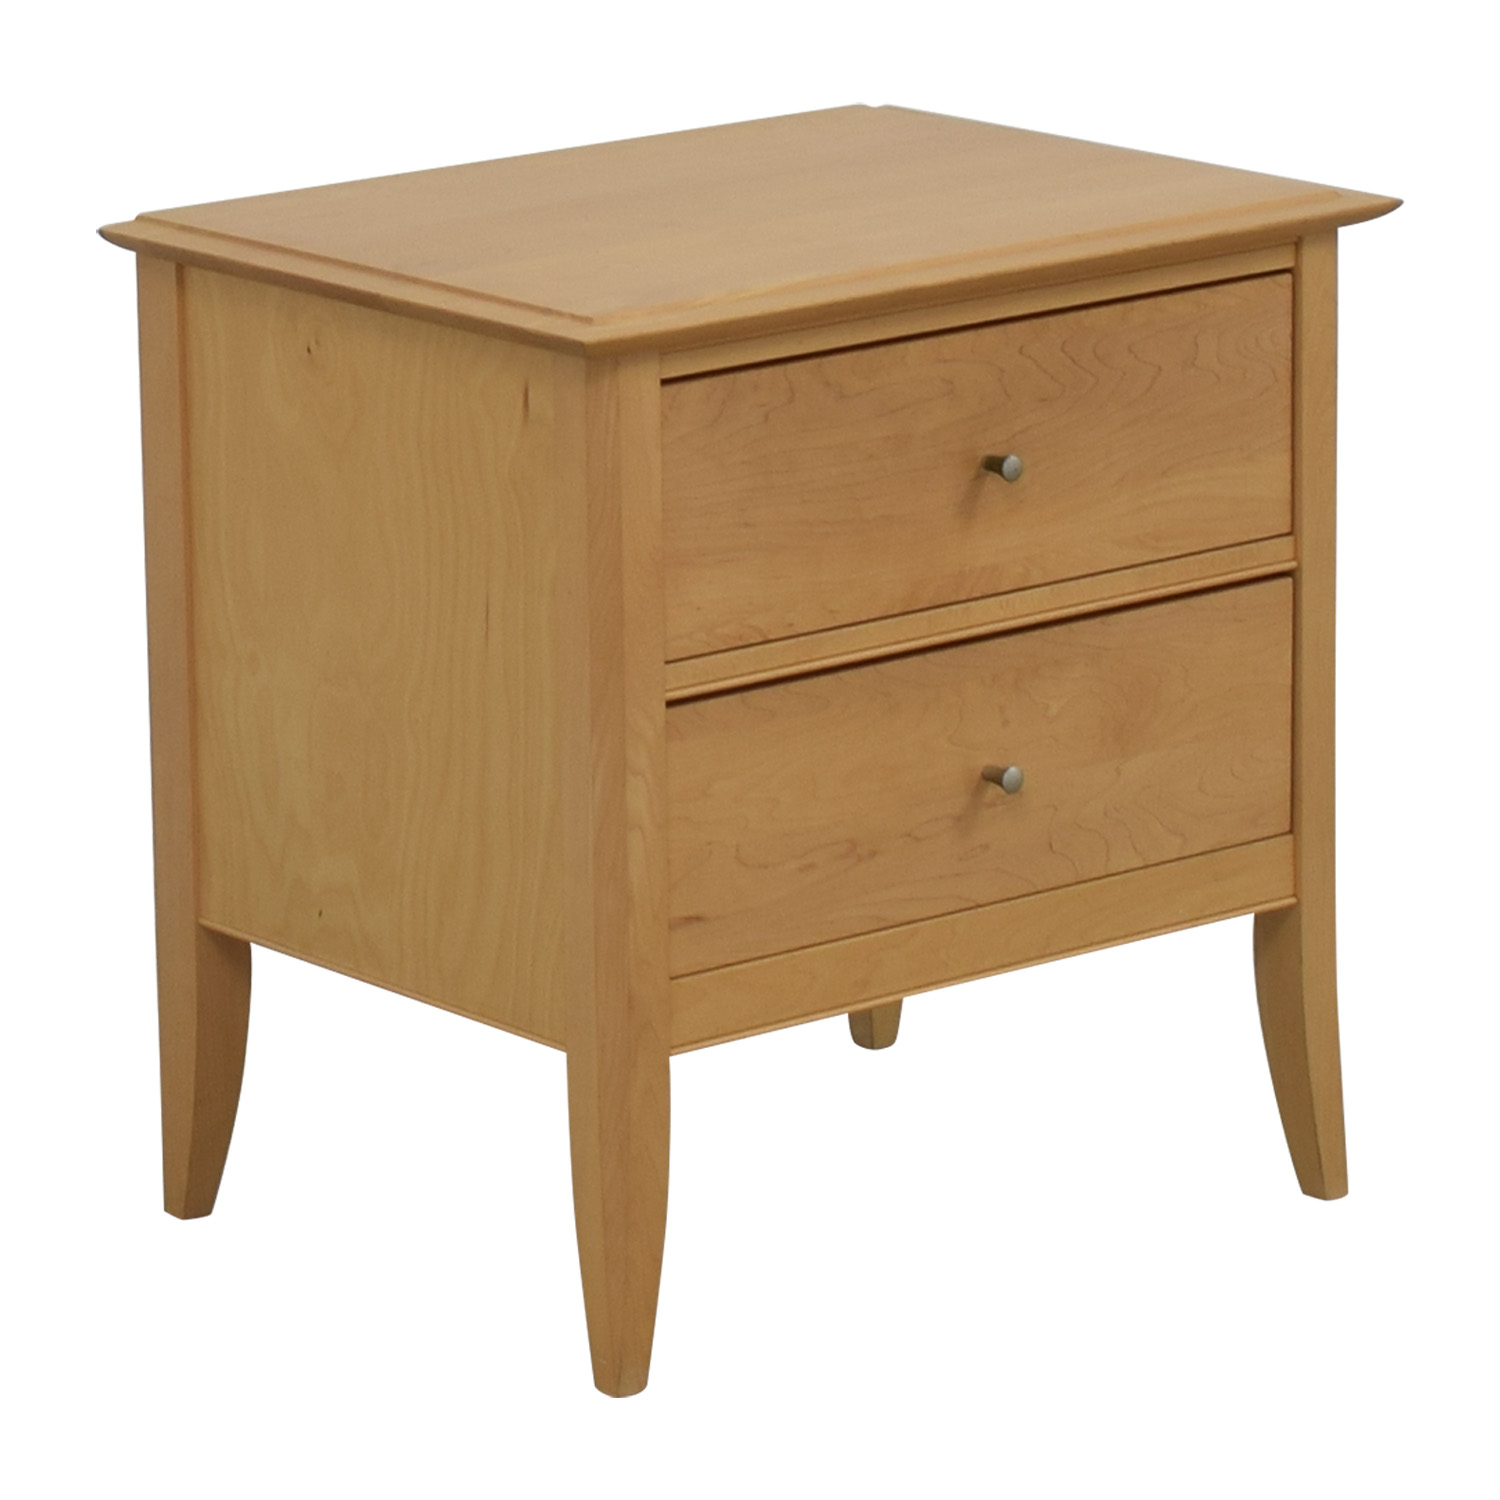 Crate & Barrel Natural Two-Drawer Side Table Crate & Barrel